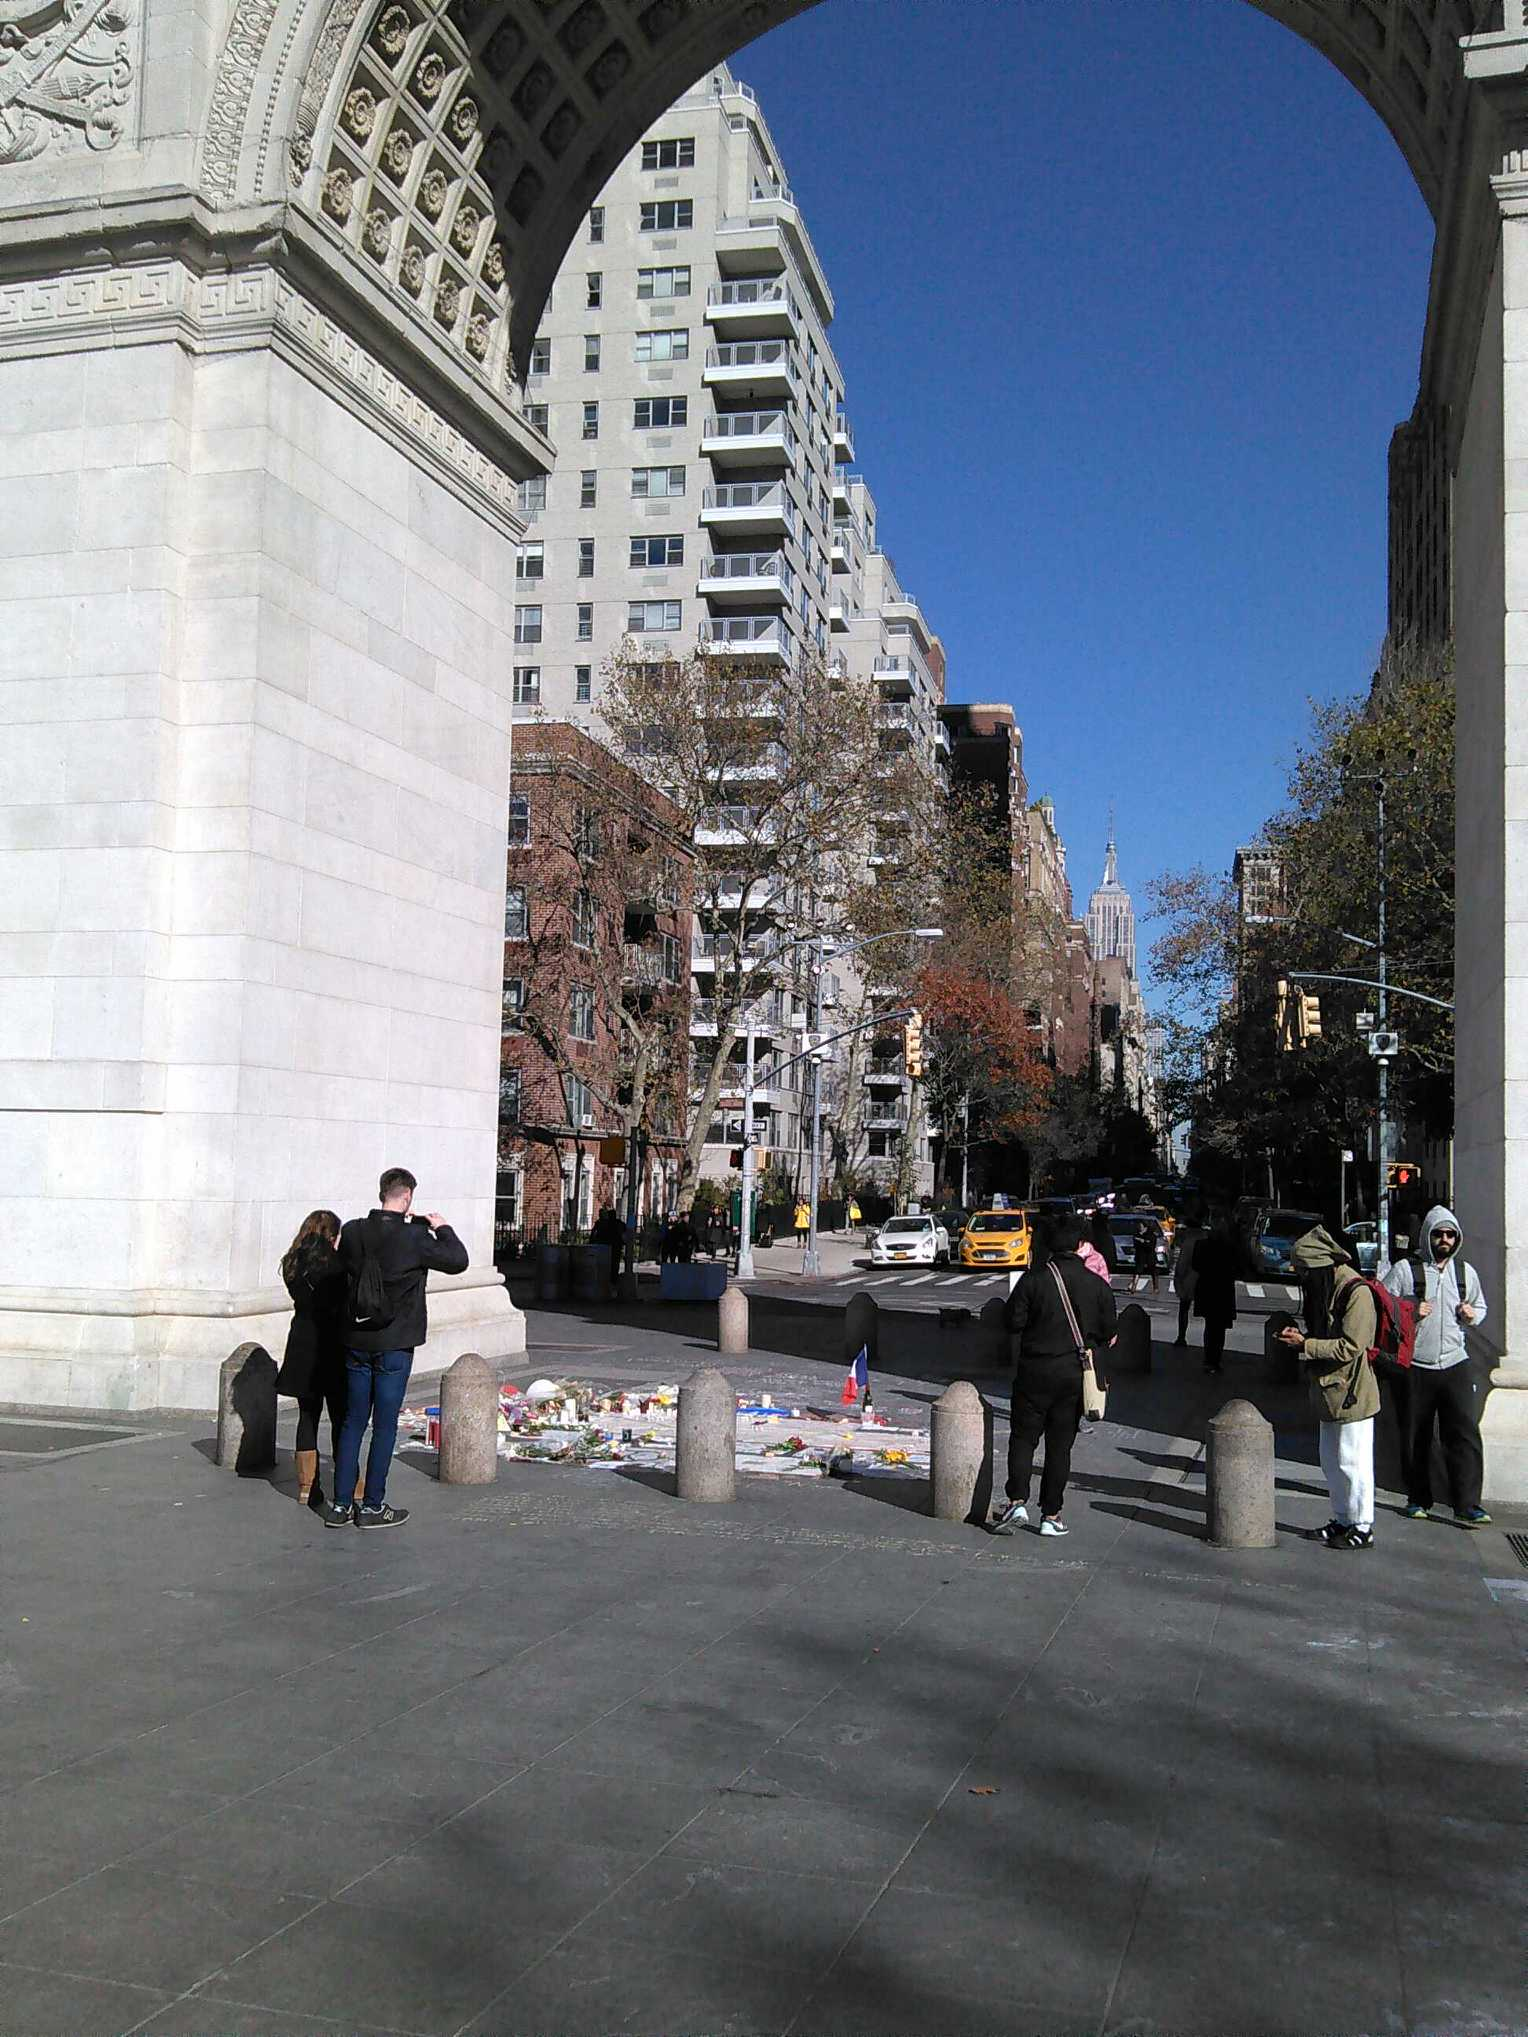 A memorial to the sad events in Paris under the Washington Square Park arch.